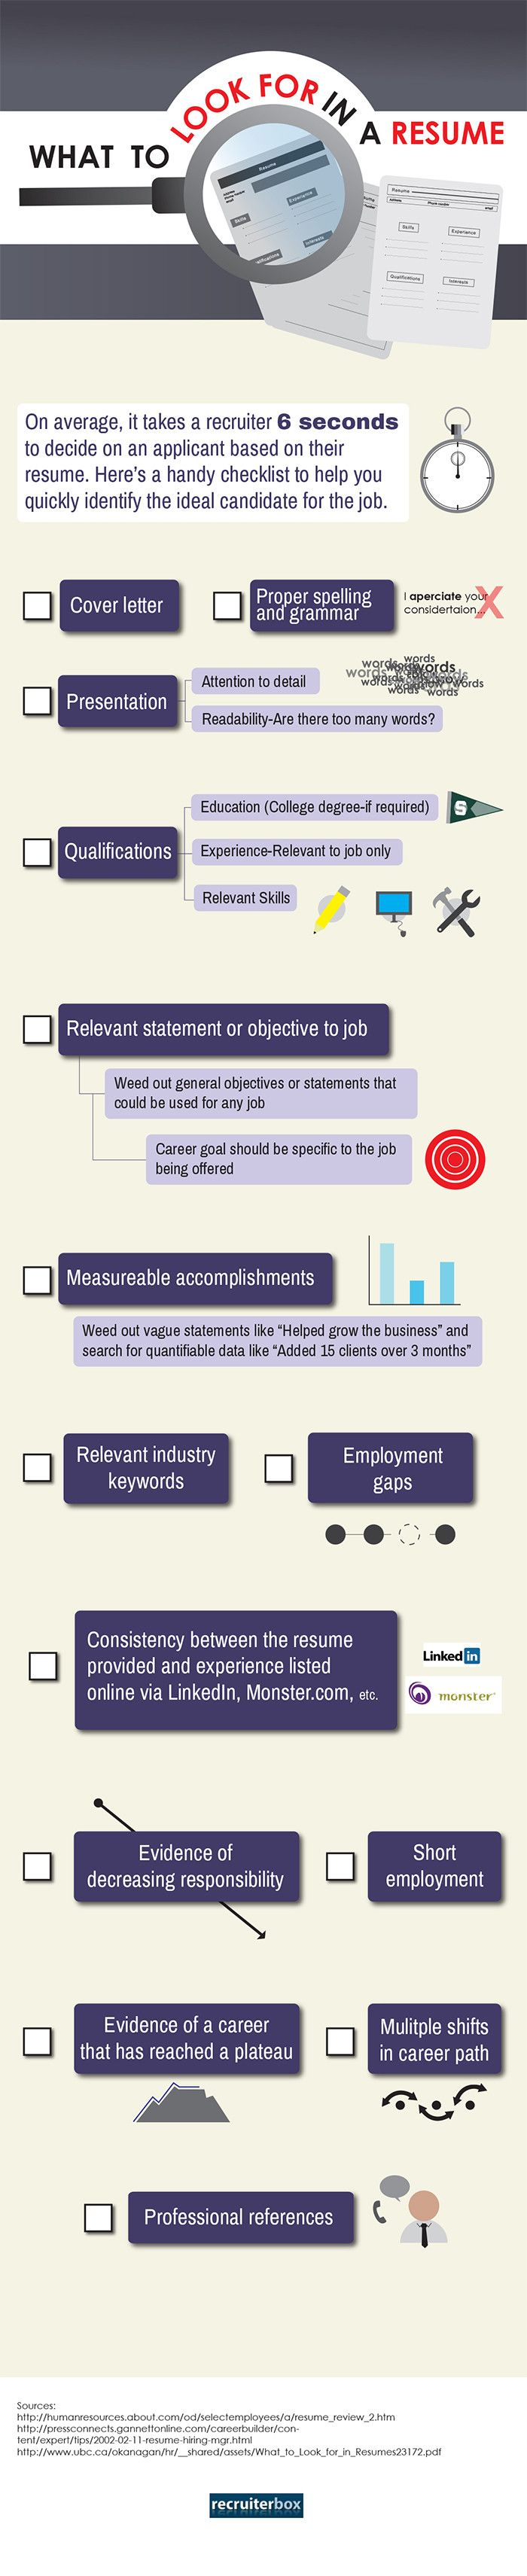 What To Look For In A Resume #infographic   Carrera